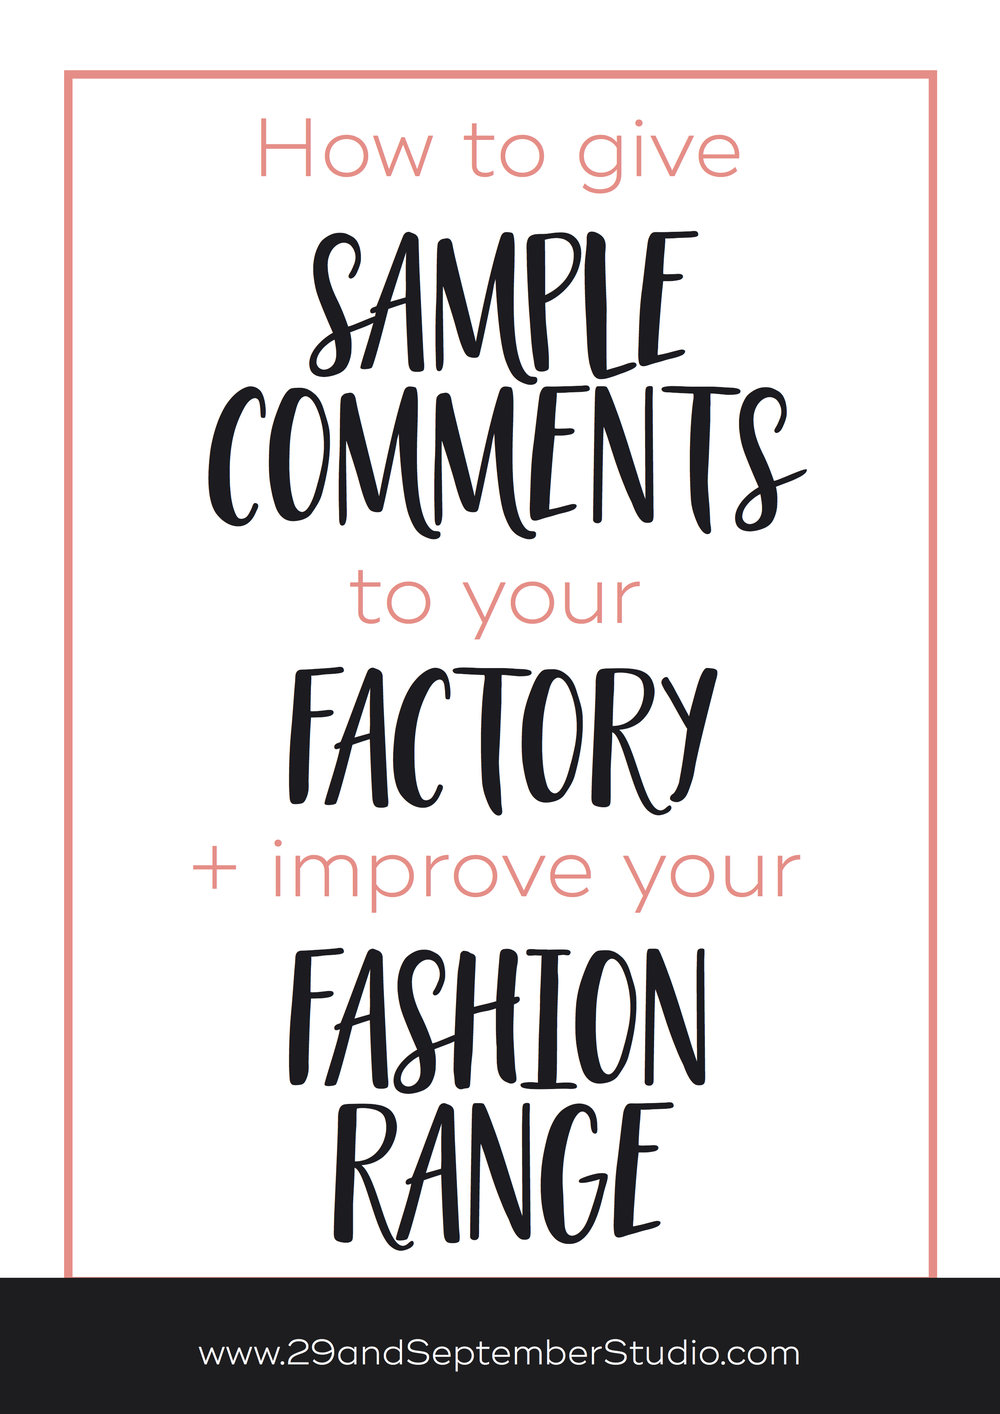 How to give sample comments to your factory + perfect your fashion range. 29andSeptember Studio